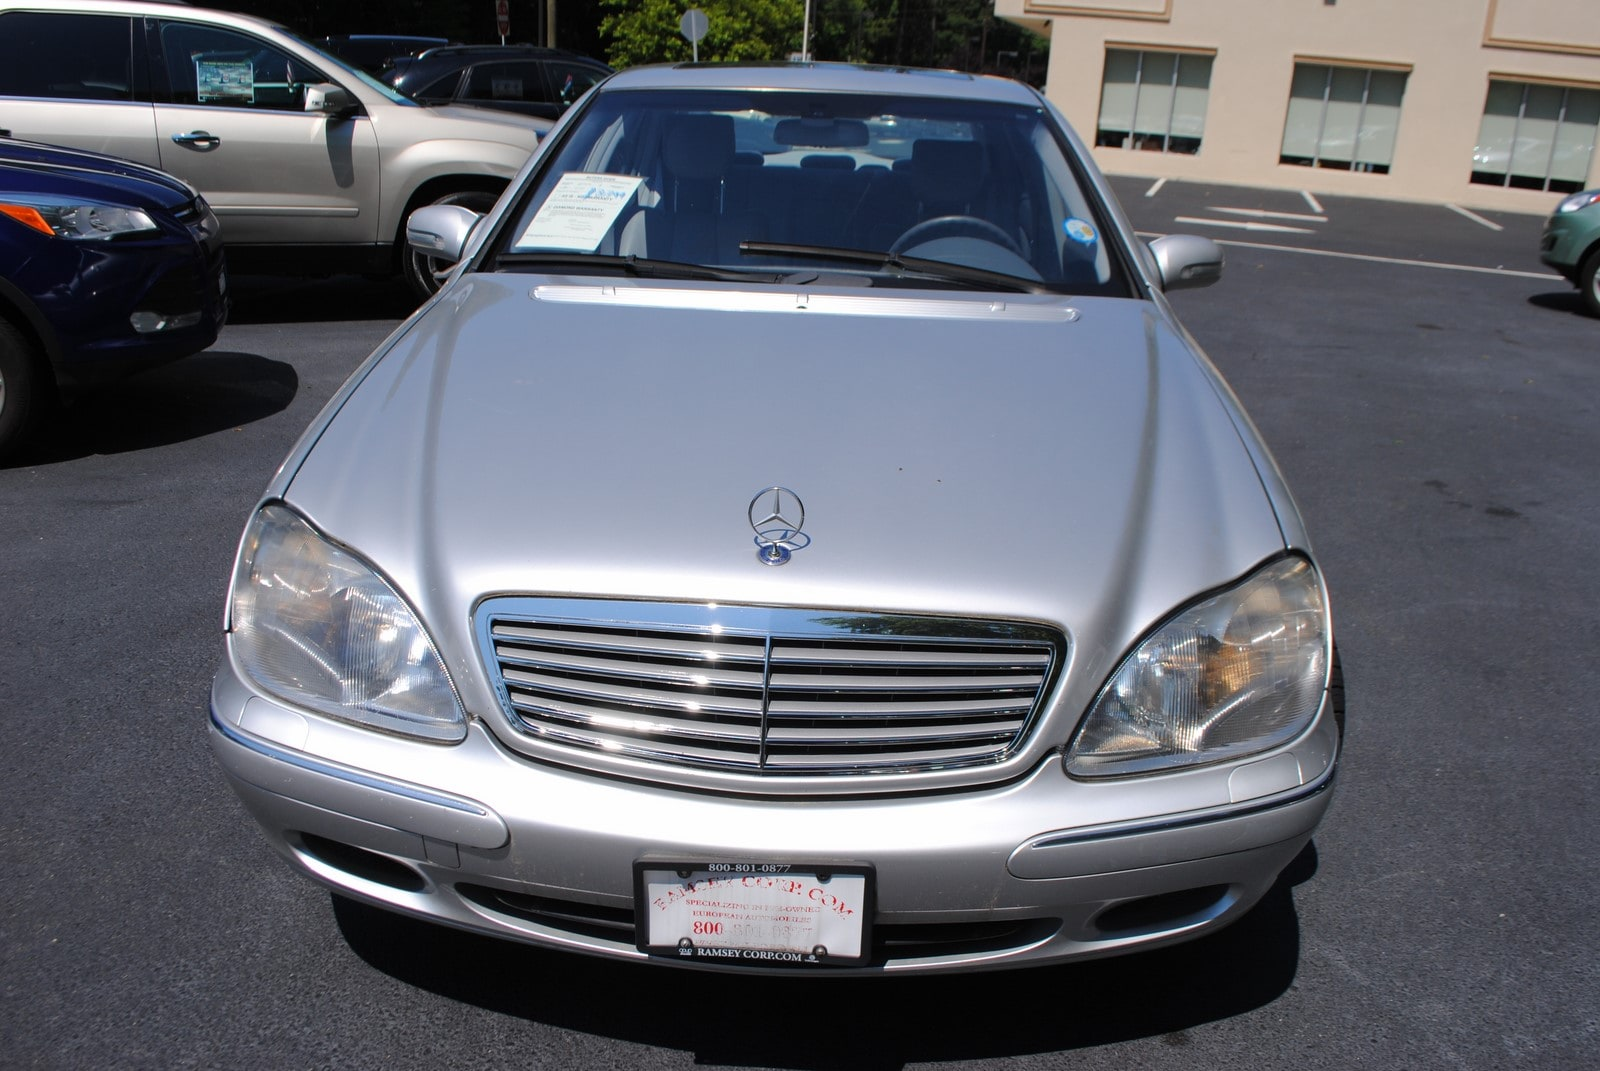 Used 2002 mercedes benz s class for sale west milford nj for Mercedes benz s class 2002